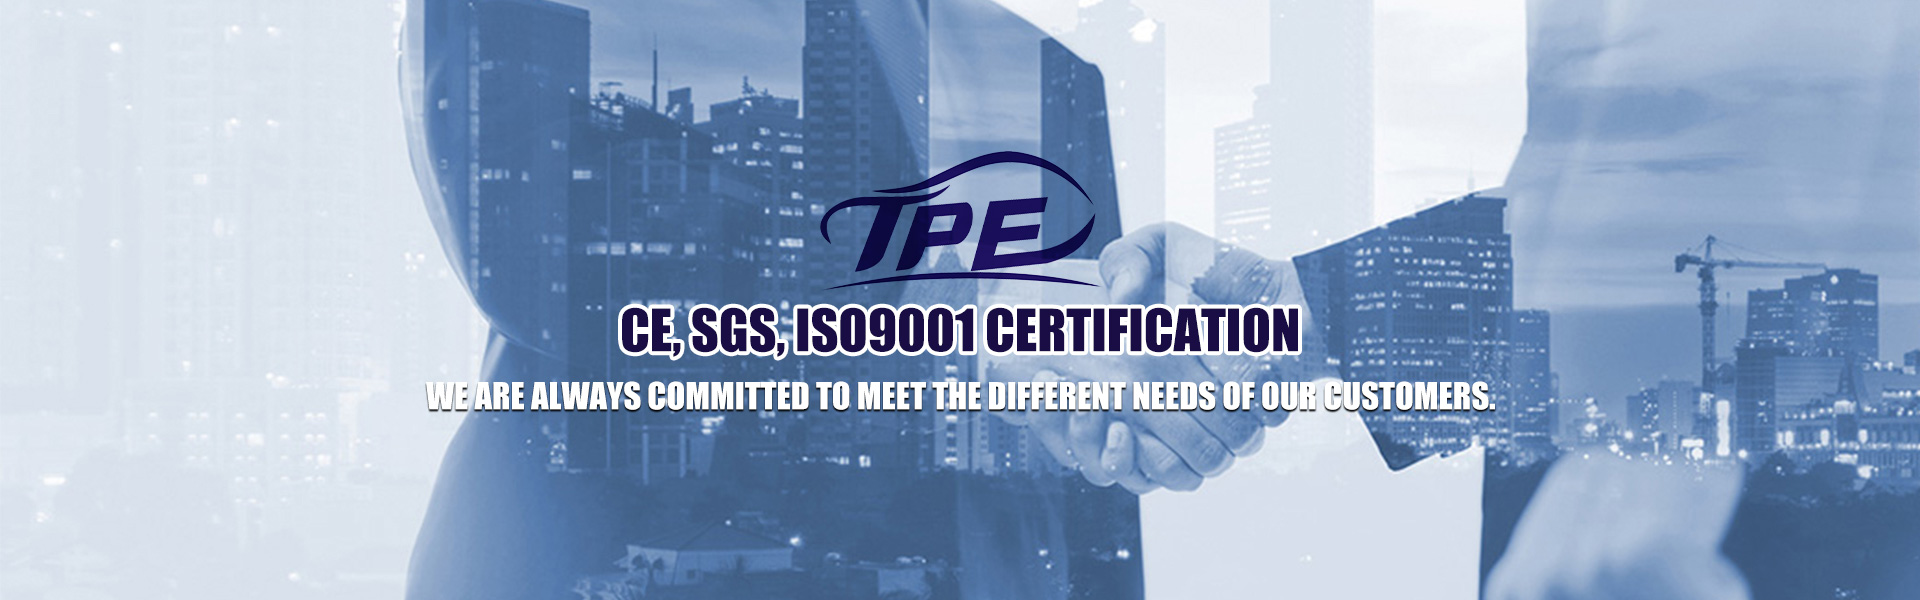 TPE-CE-SGS-ISO9001-certification-Banner-02